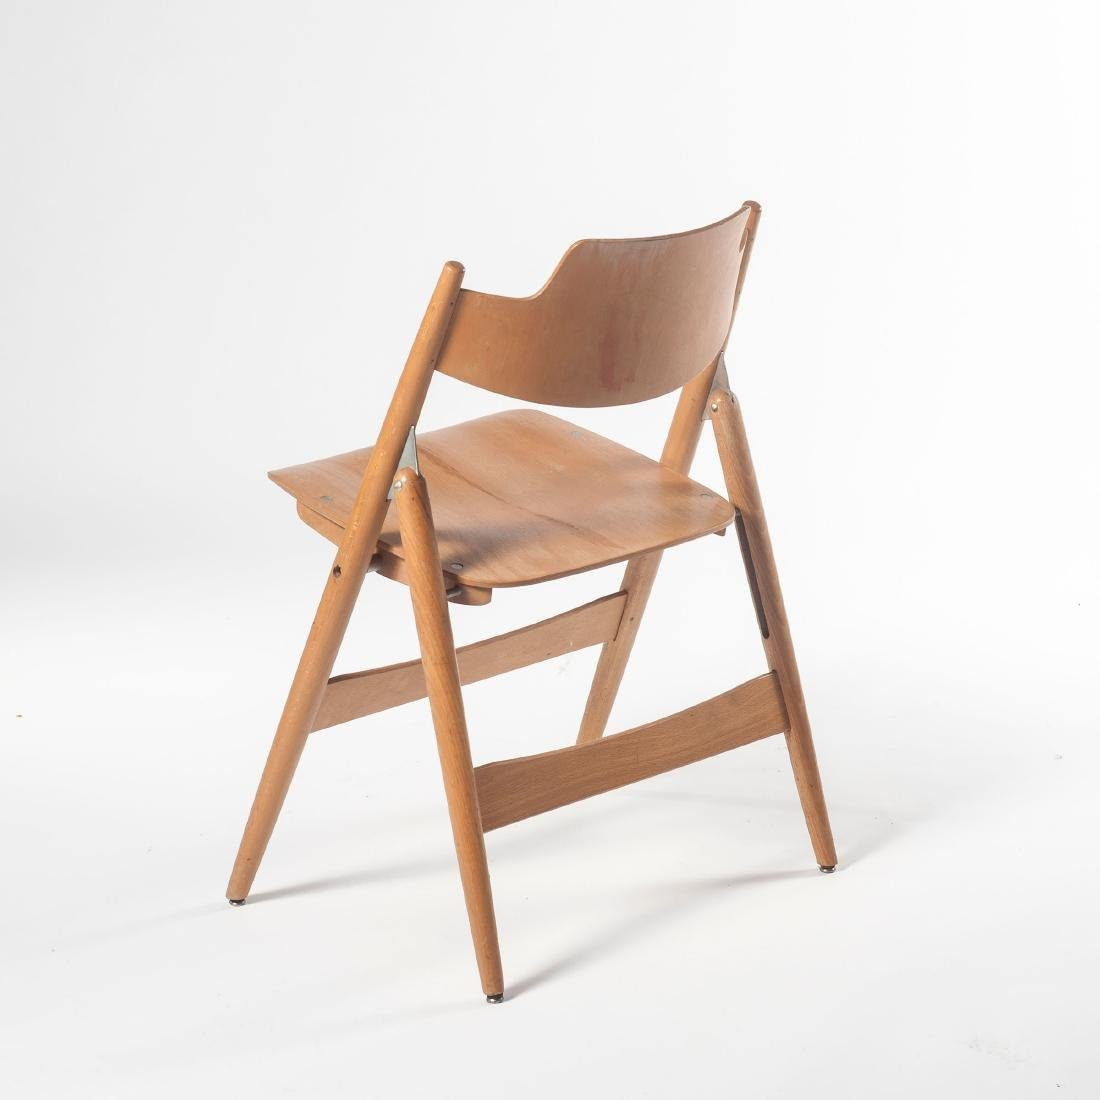 Six 'SE 18' folding chairs, 1953 - 3